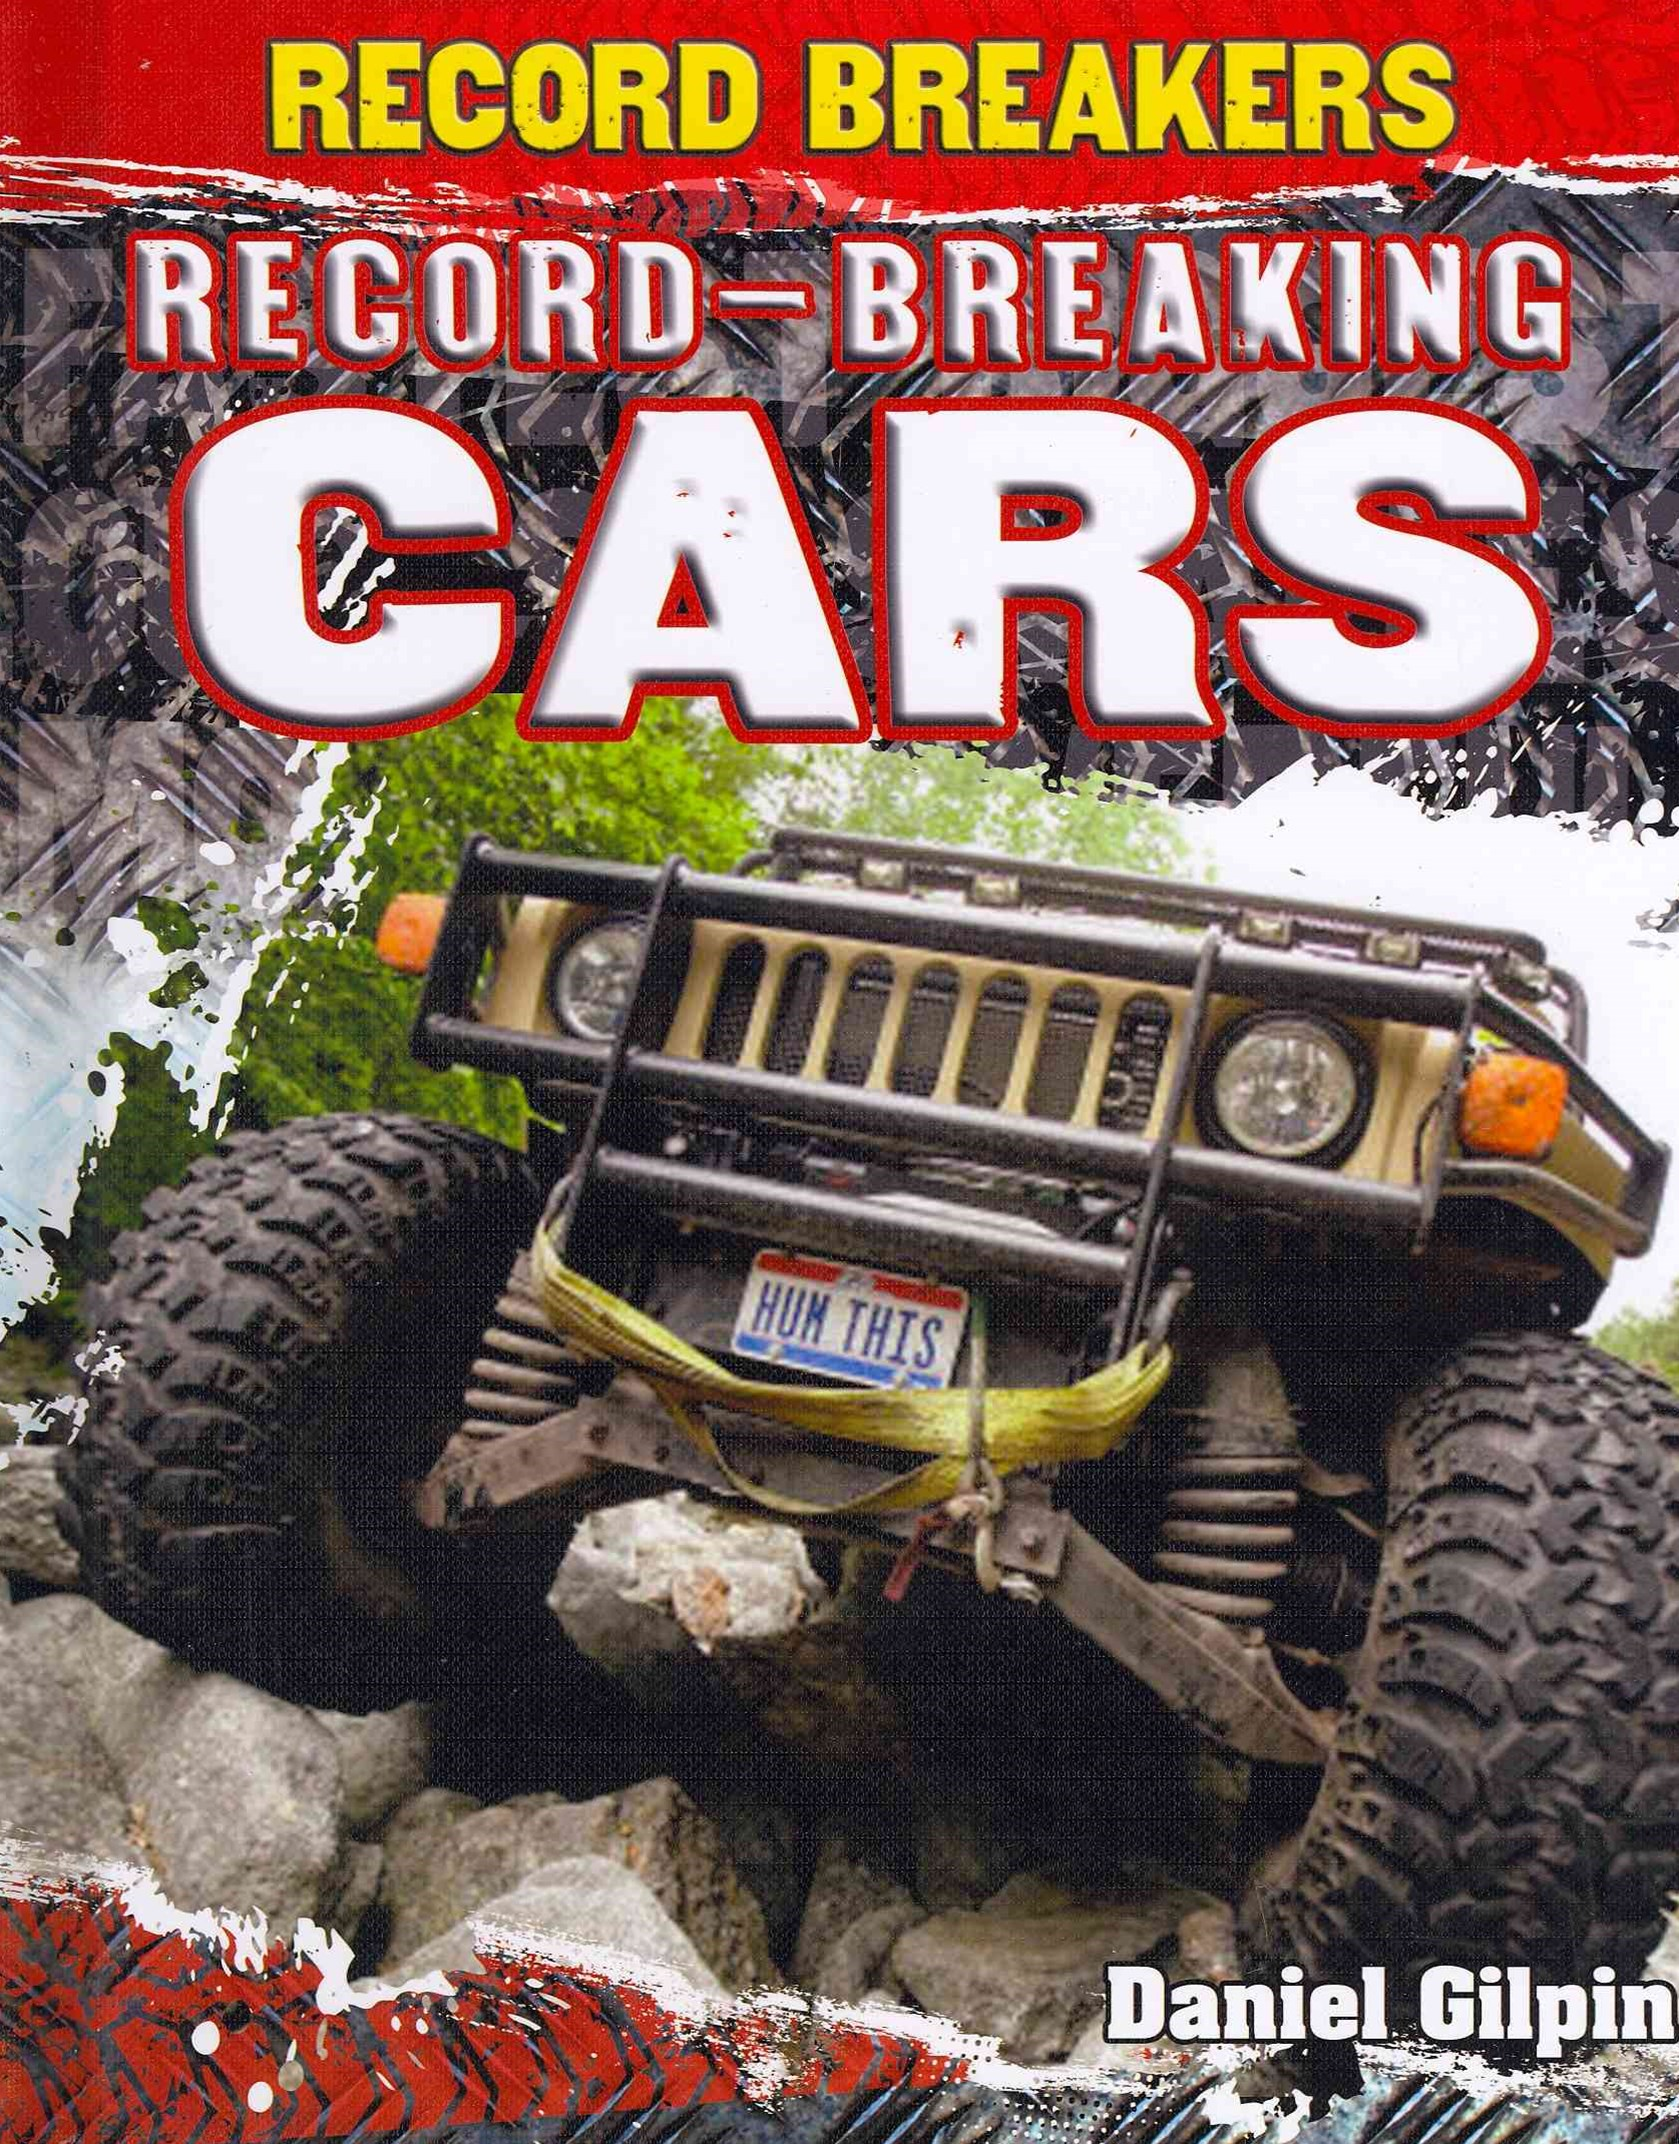 Record-Breaking Cars